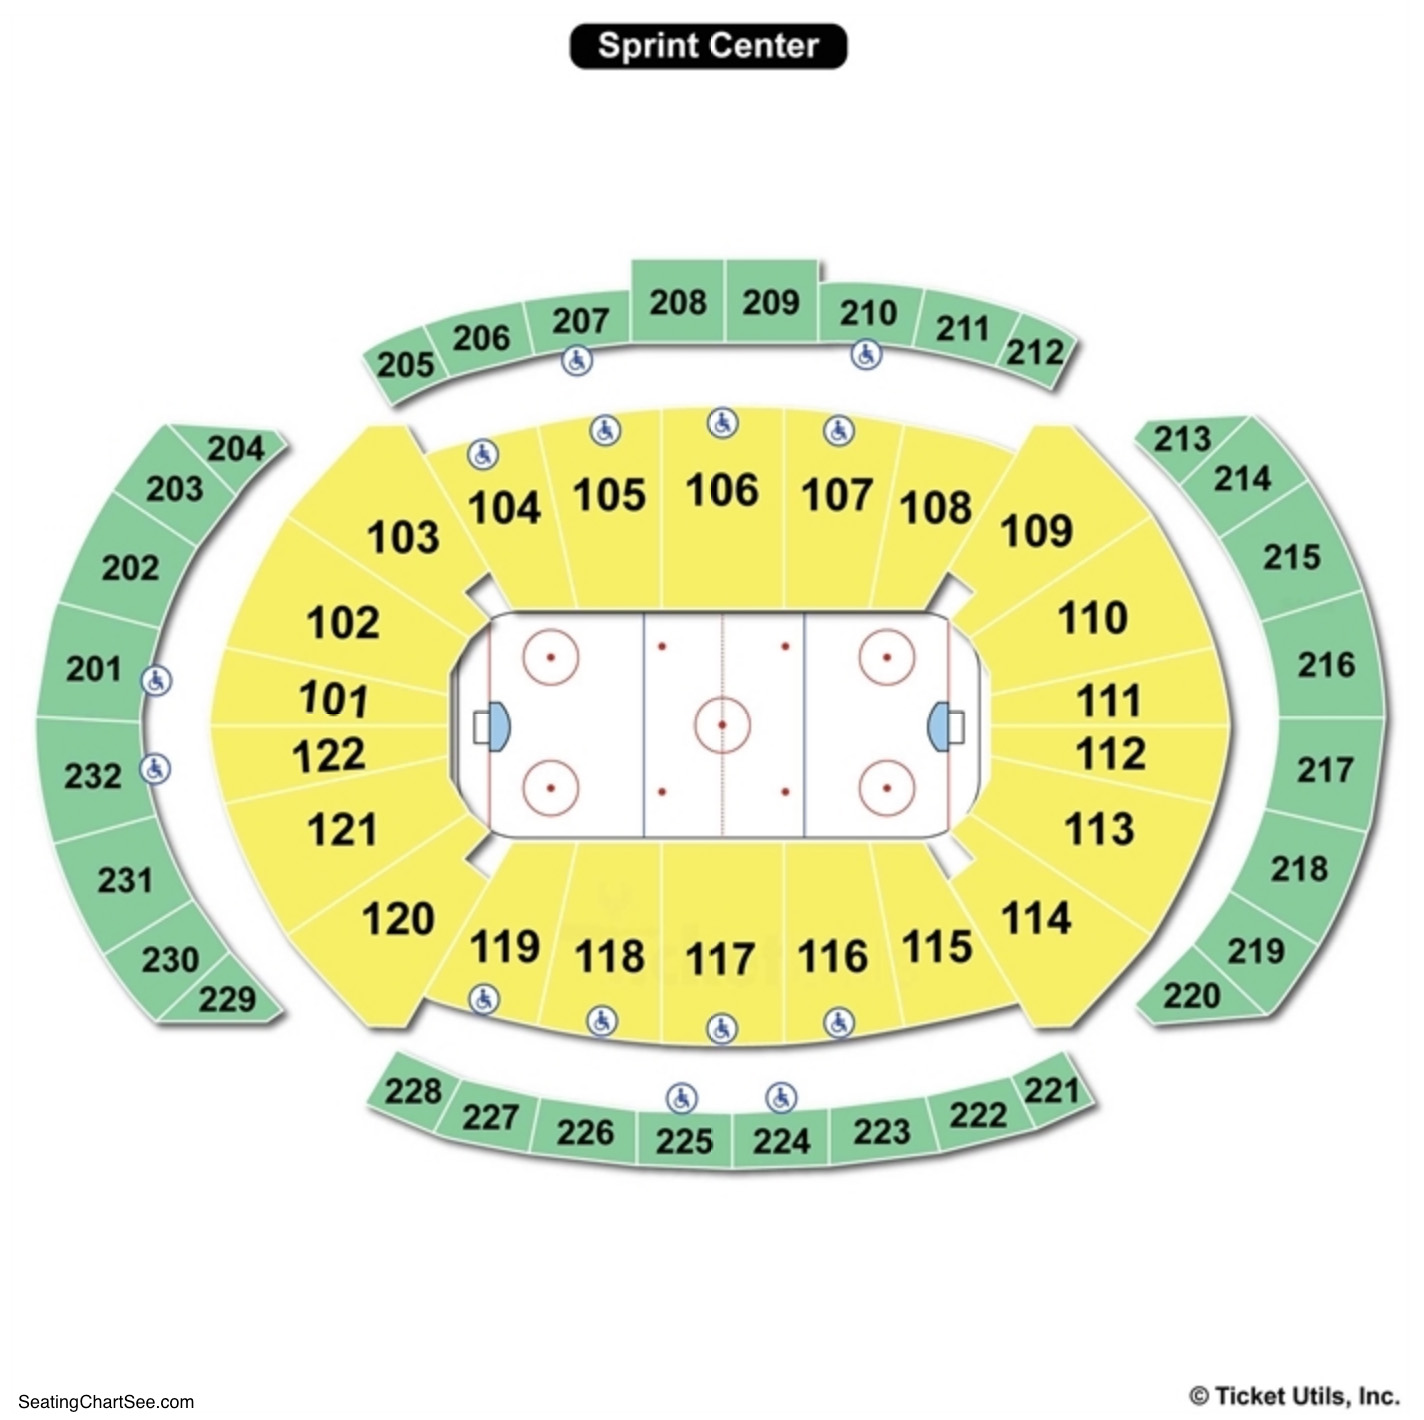 Sprint Center Hockey Seating Chart